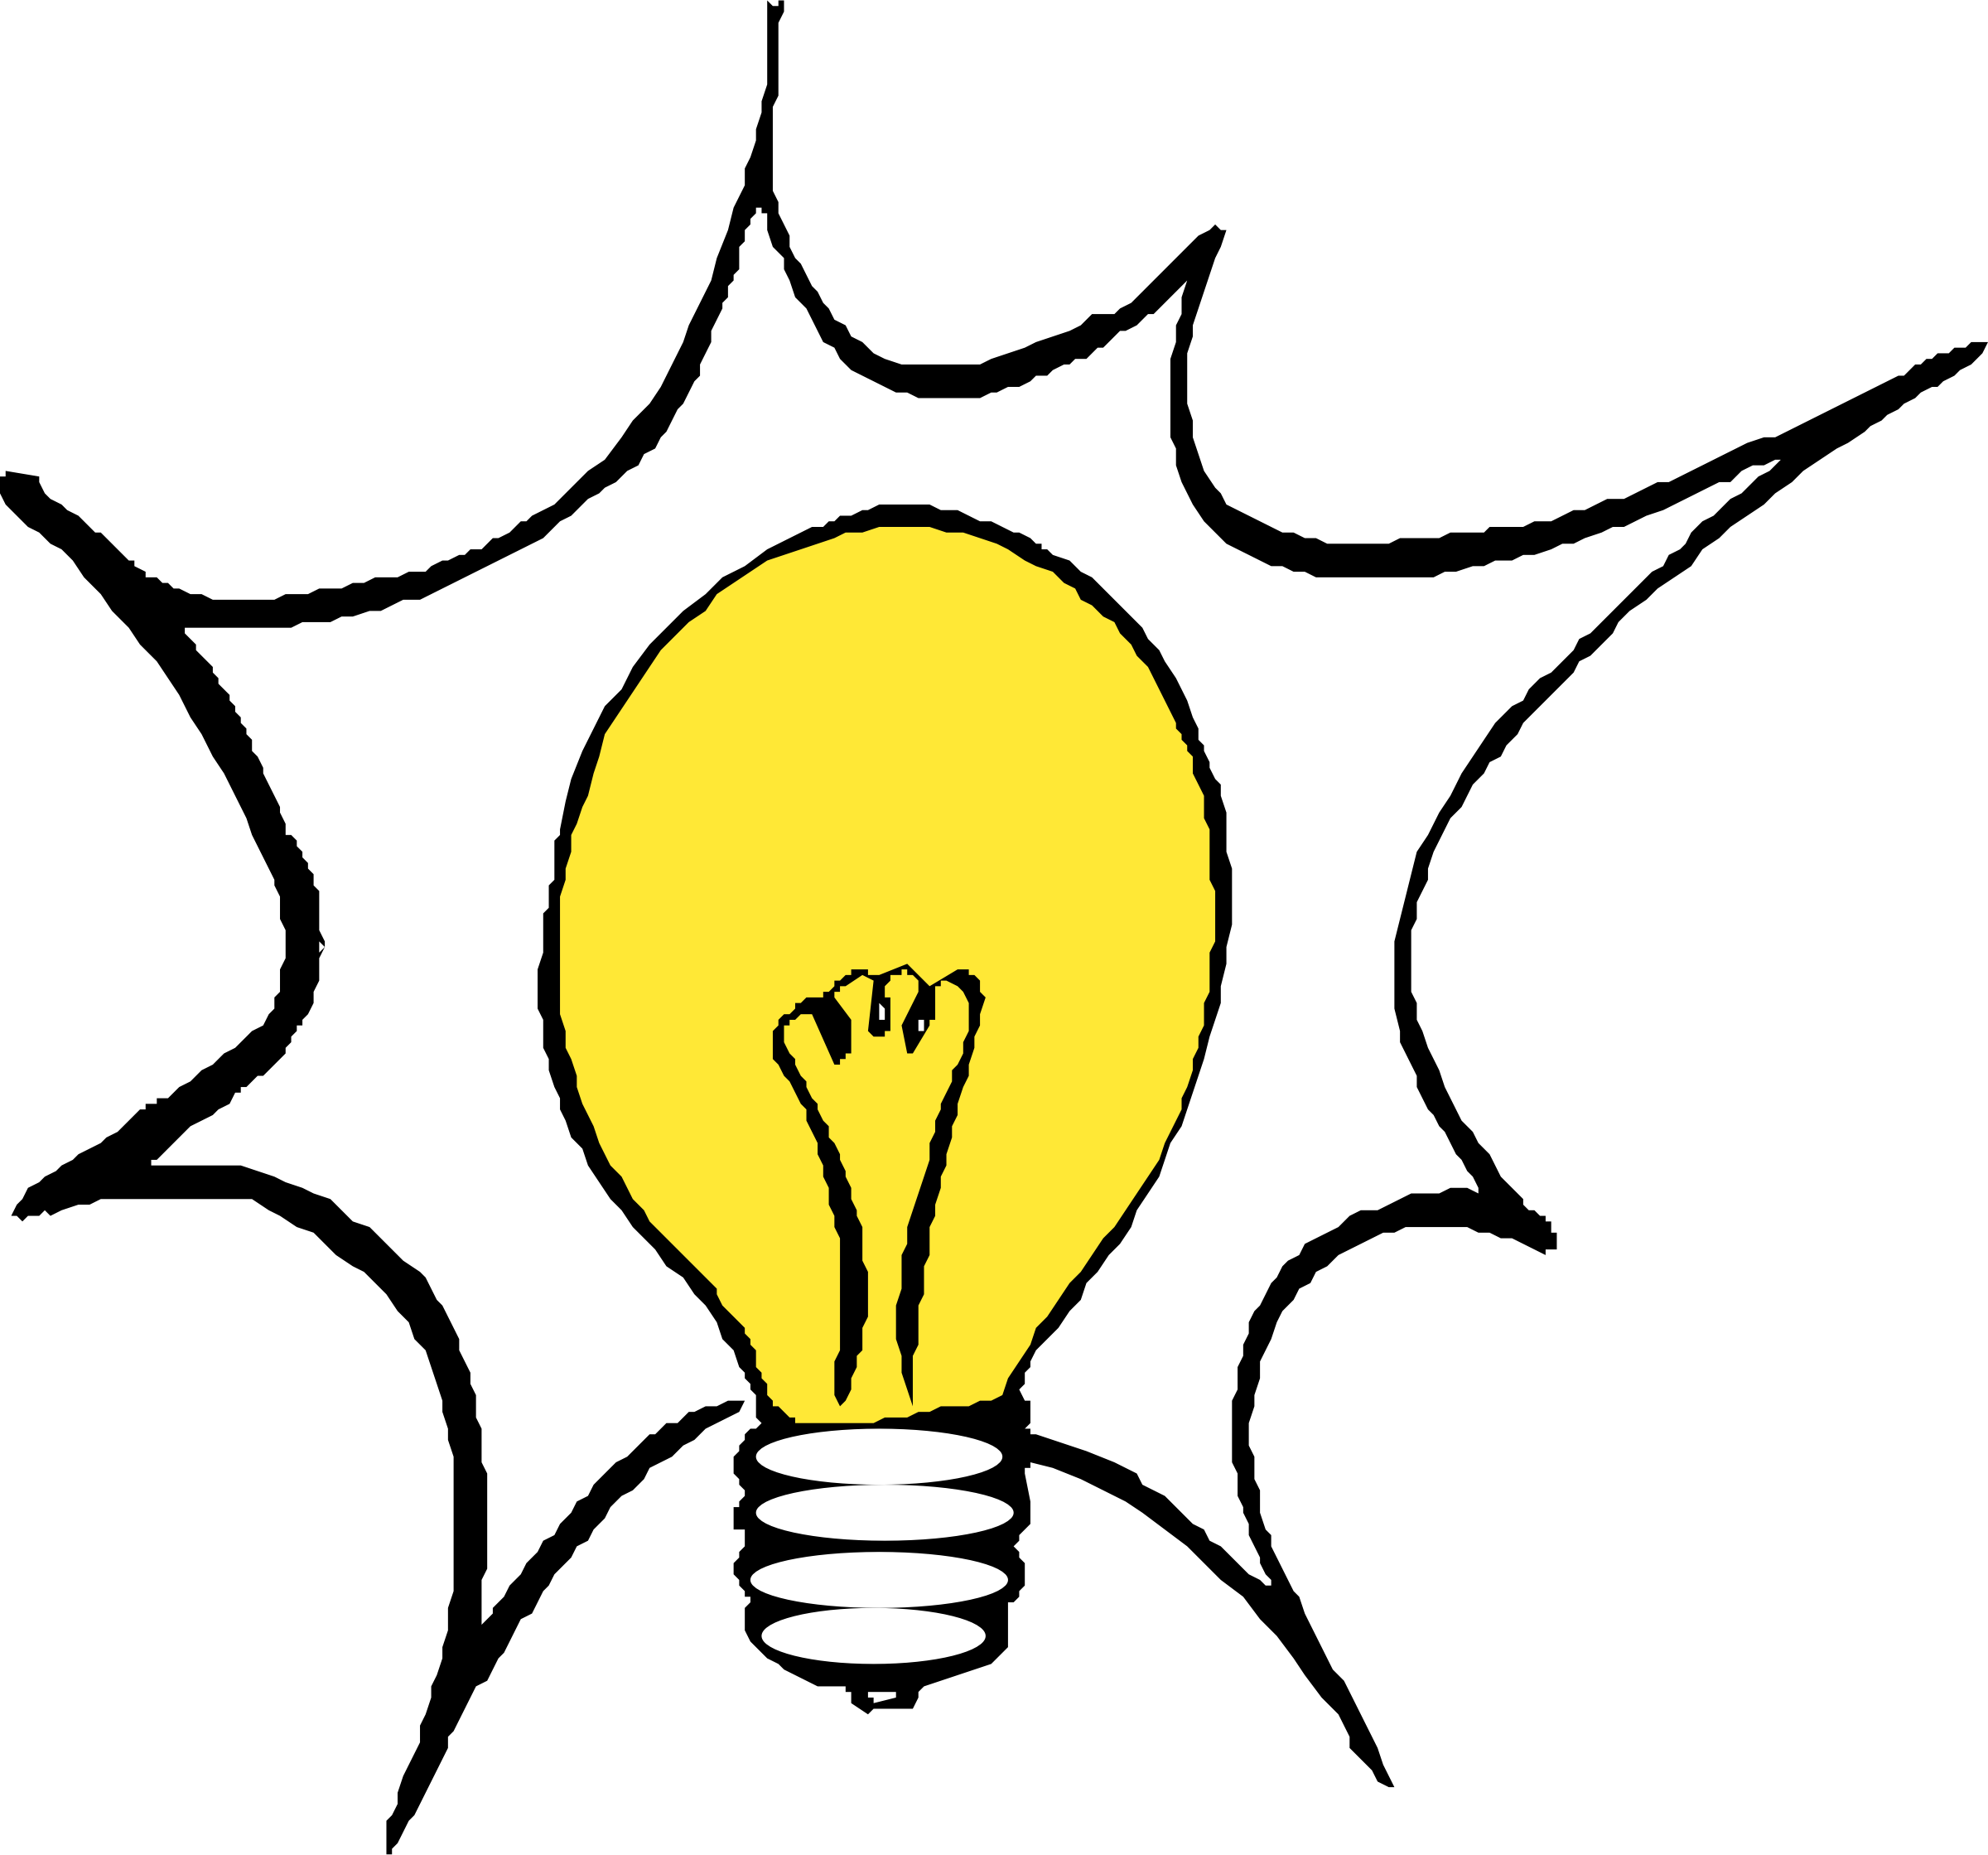 Lamp clipart electrical bulb. Light big image png